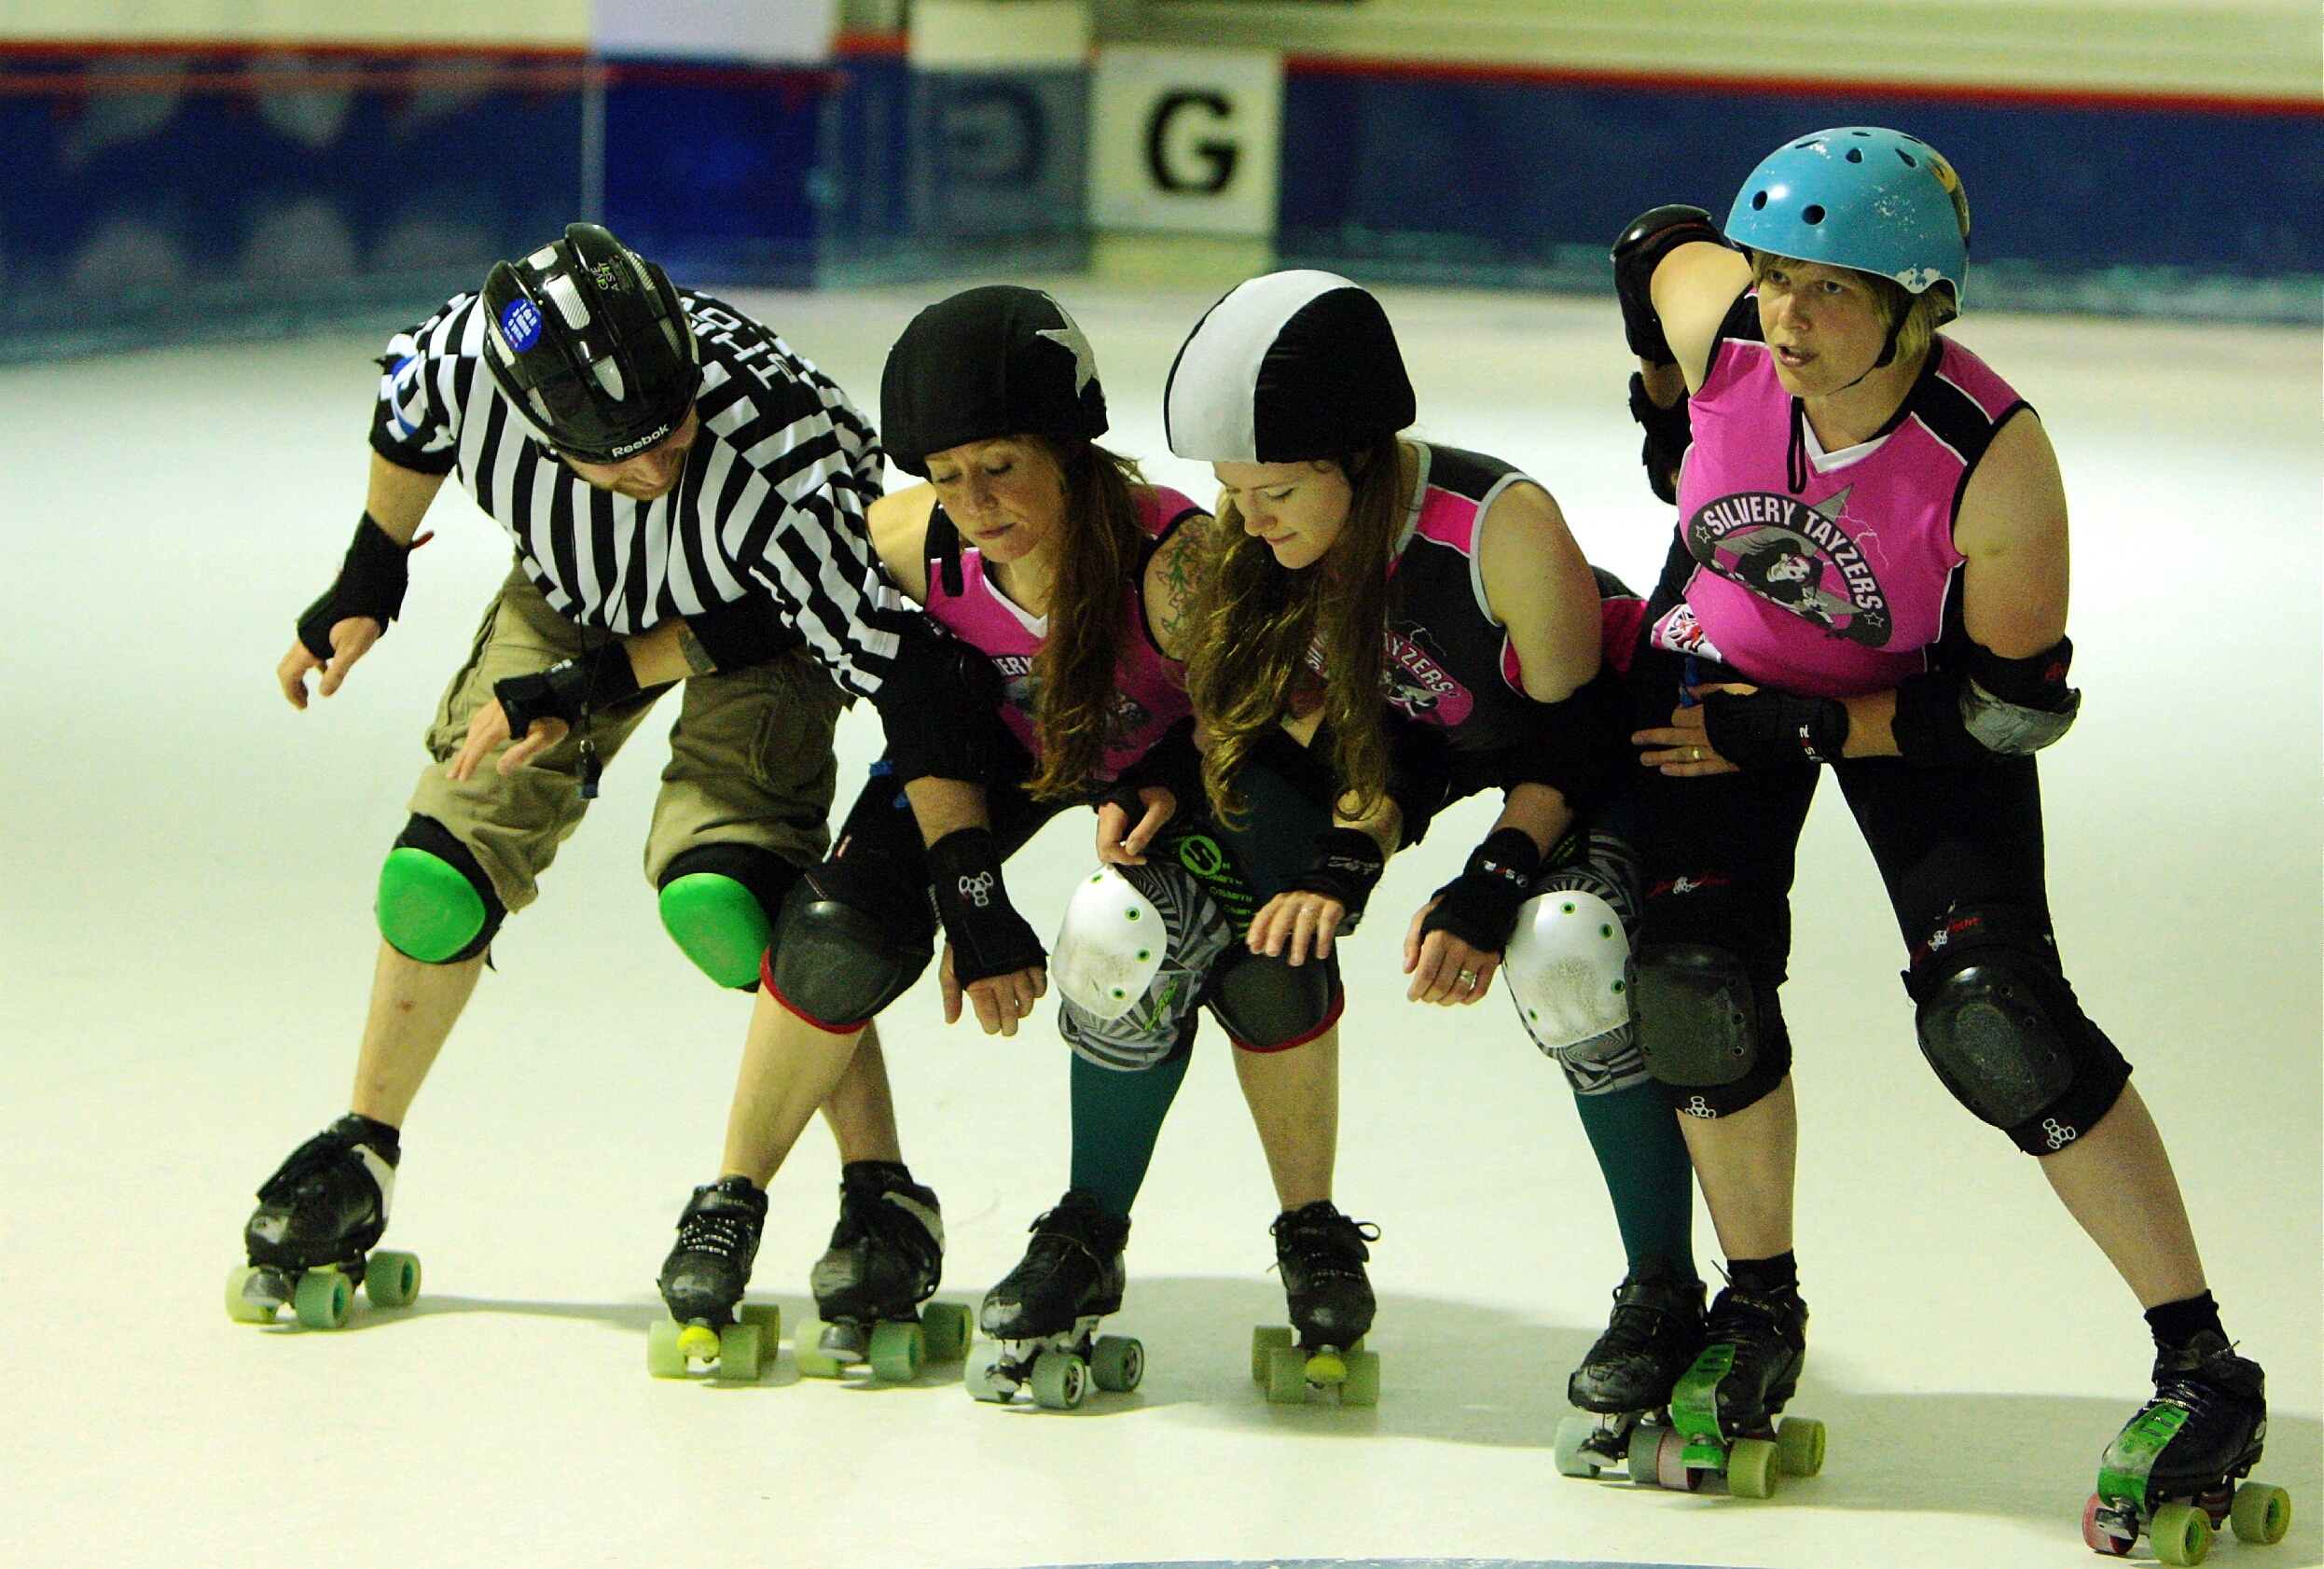 The Dundee Roller Girls in action.